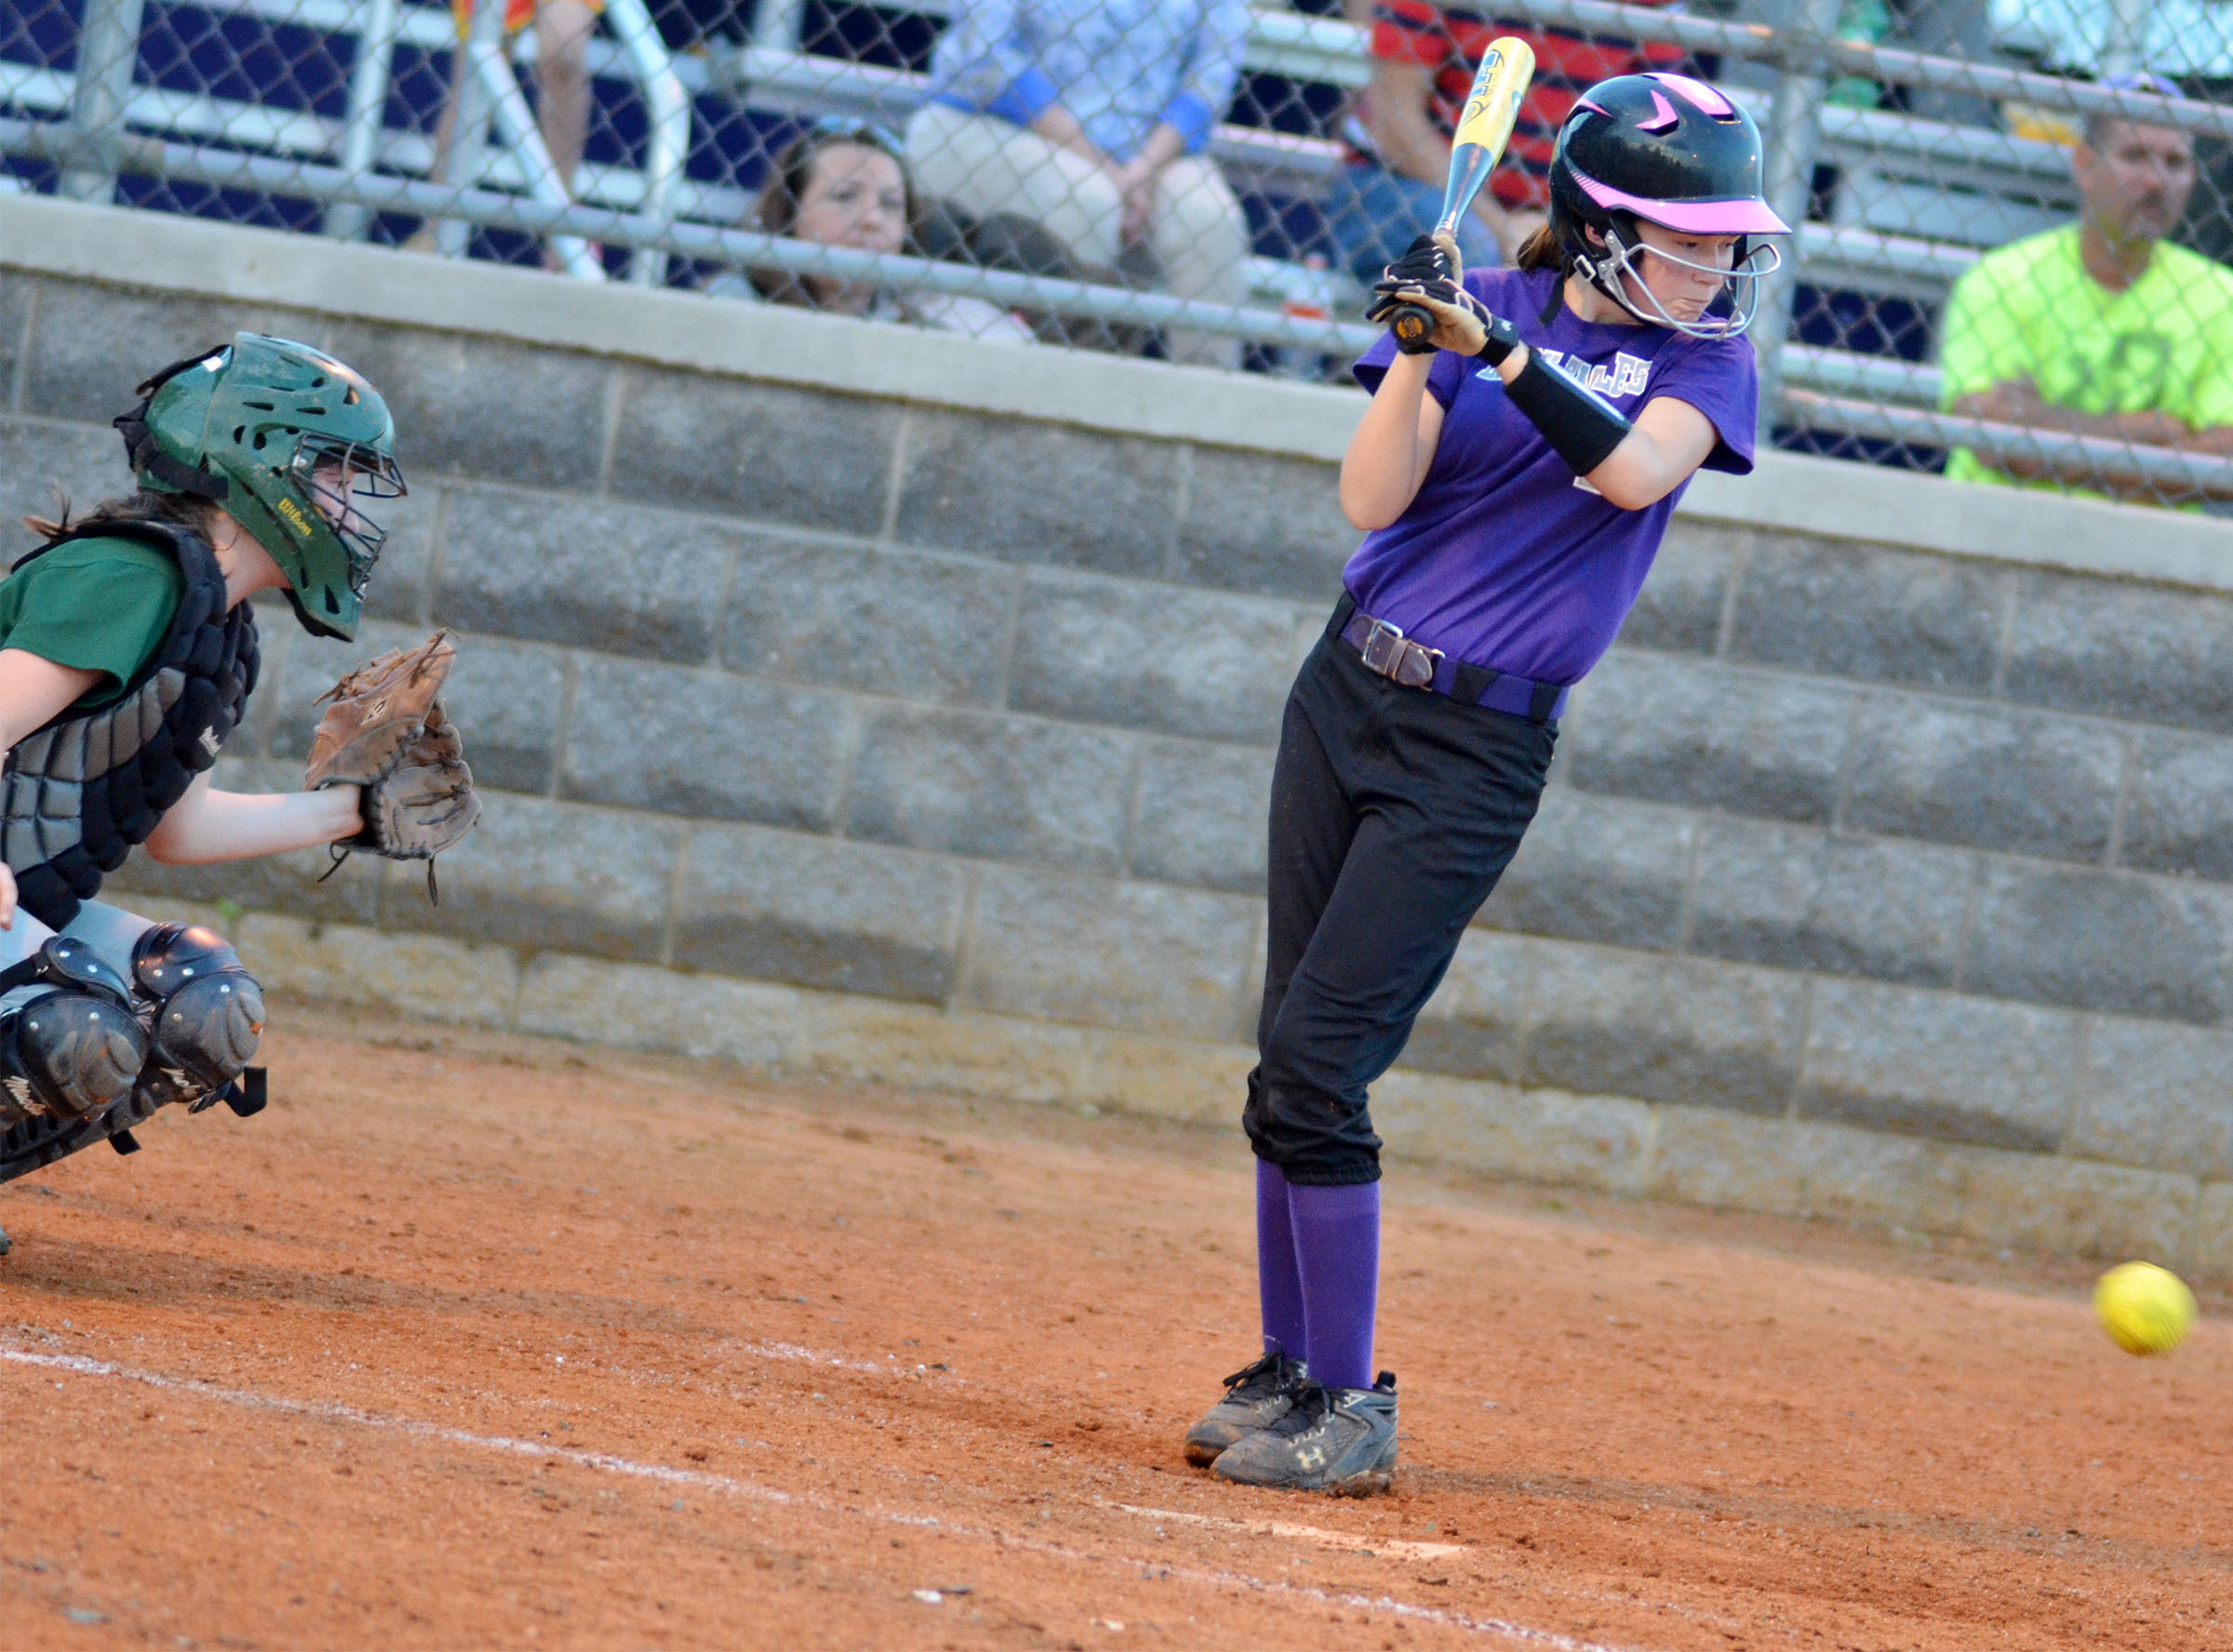 CMS sixth-grader BreAnna Humphress braces herself as the ball comes to the plate.